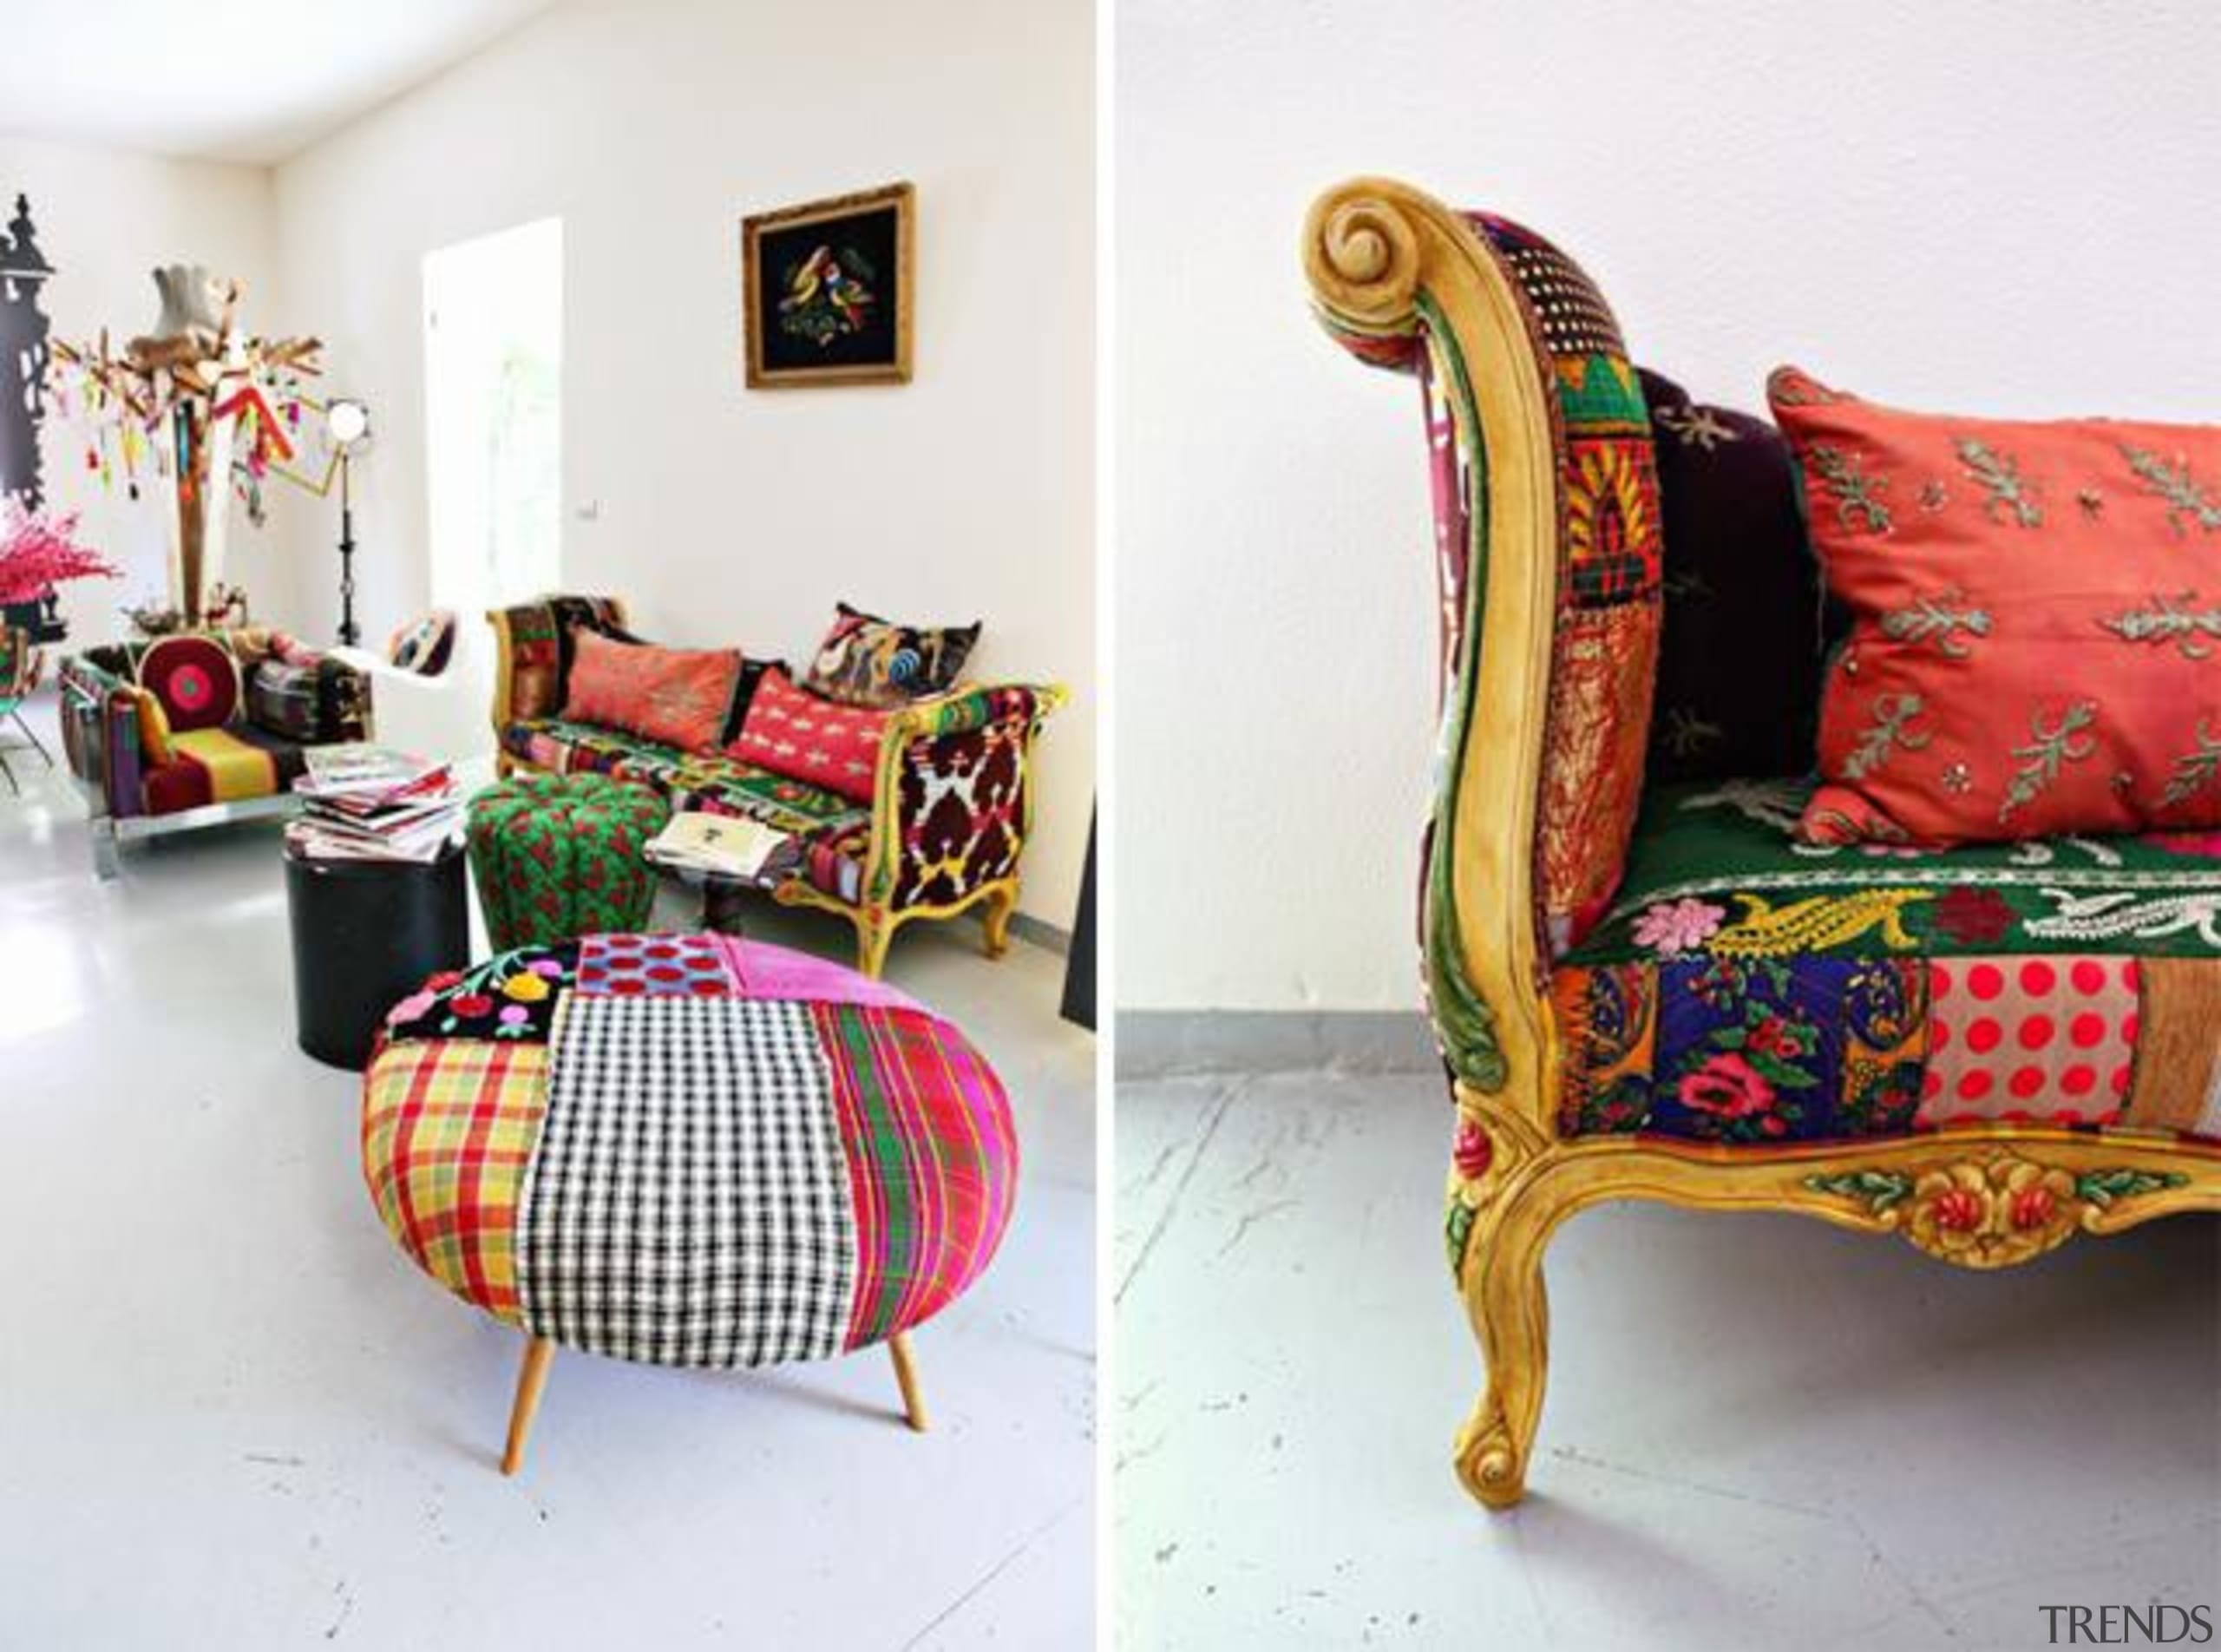 These exuberant pieces of furniture are the fruits chair, couch, cushion, furniture, home, interior design, living room, room, textile, white